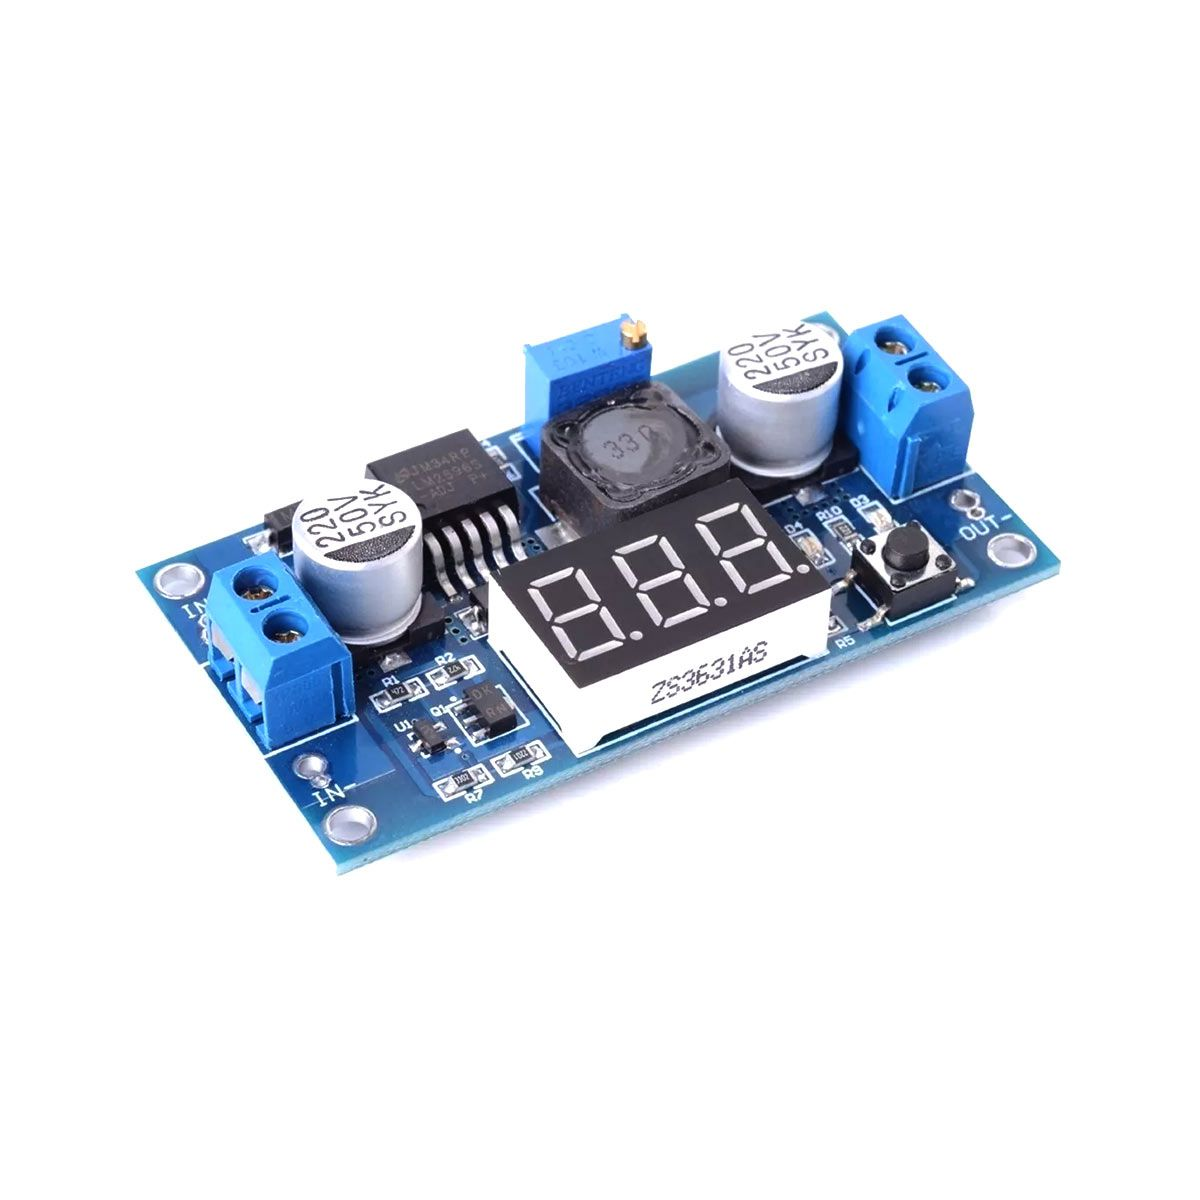 Regulador de Tensão Step Down Ajustável LM2596 DC-DC com Display